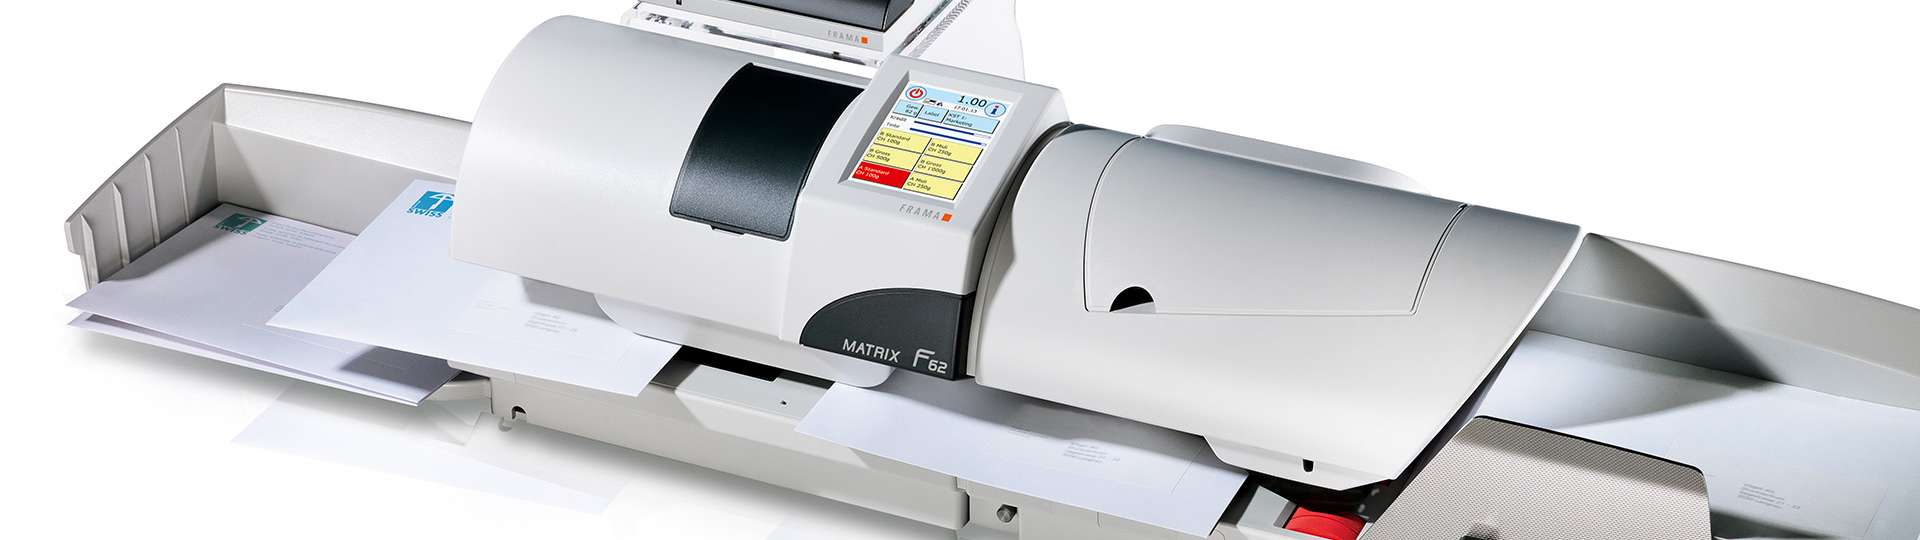 Frama F62 Franking Machine